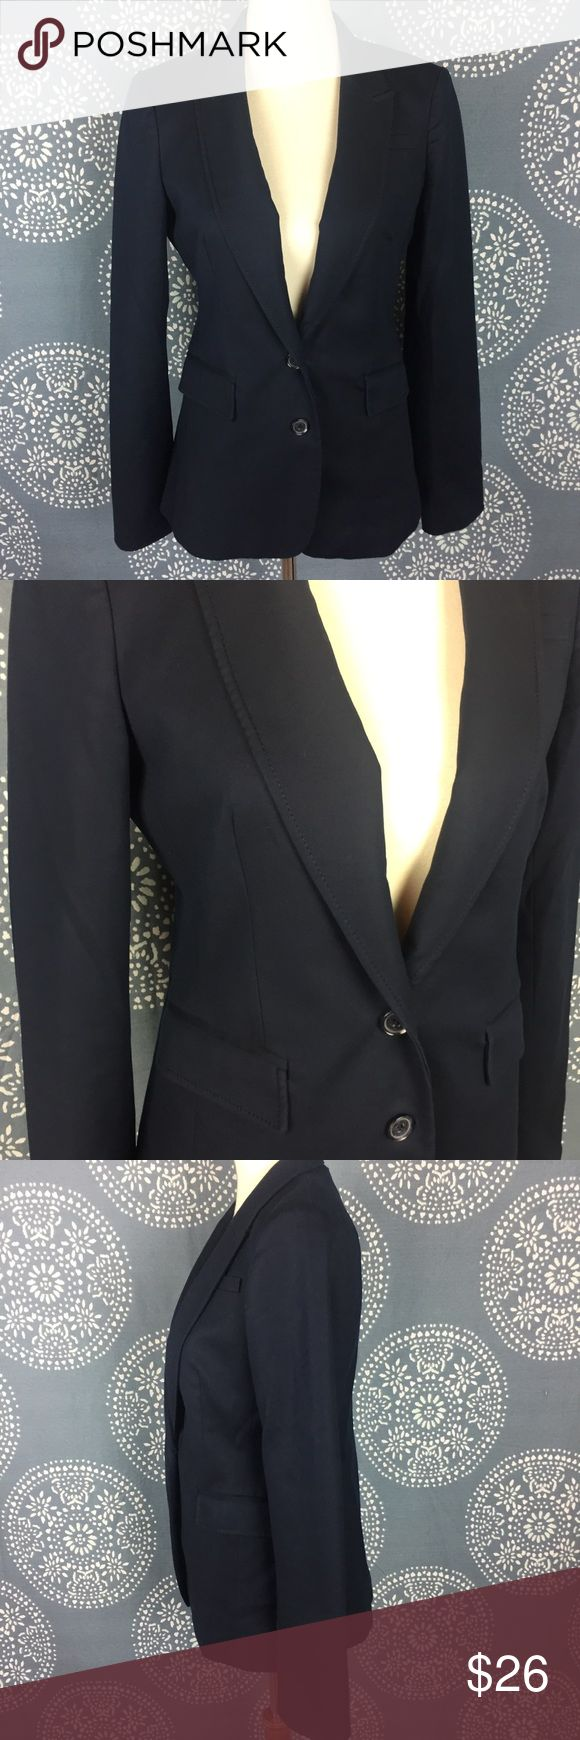 "Banana Republic Navy 2 Button Blazer Banana Republic blazer in a navy color. It looks black in the pictures but is definitely navy. It has a 2 button closure and 2 front pockets with flaps. Great condition. 18"" armpit to armpit and 27"" long. Banana Republic Jackets & Coats Blazers"